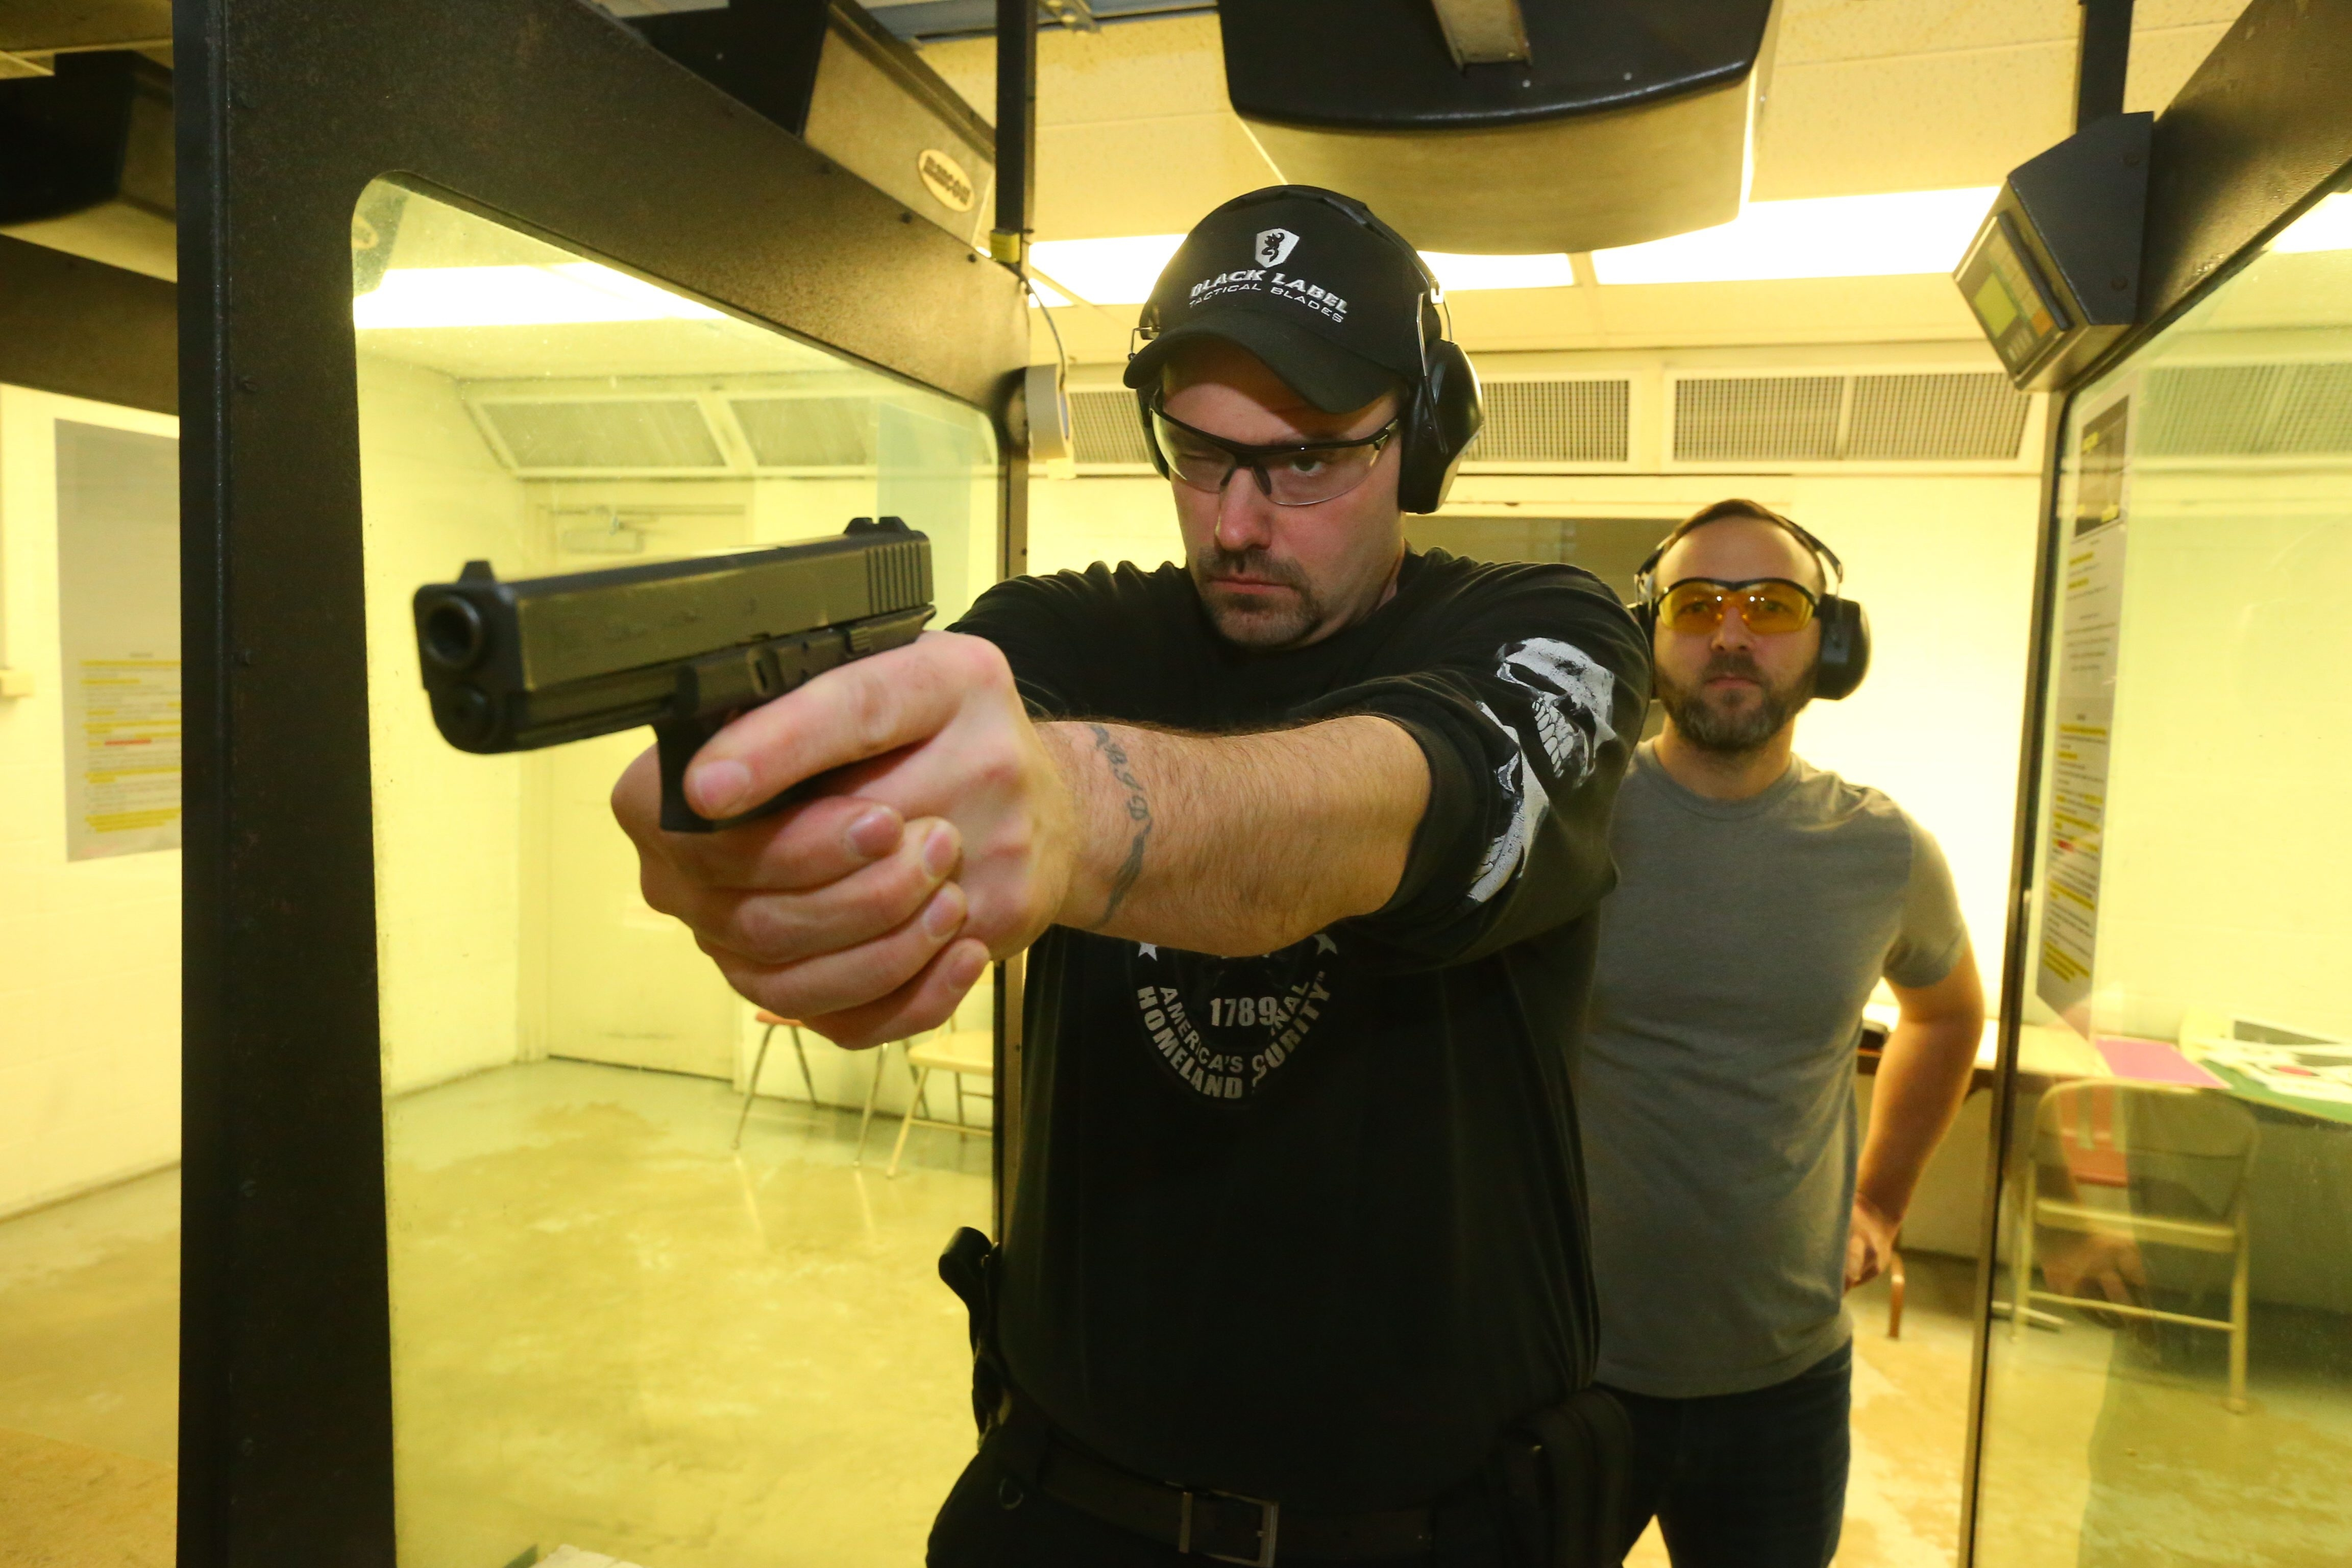 Michael Deasy, right, co-owner of Niagara Gun Range, is shown at the shooting range area with pistol permit holder and employee Luke Price. Besides shooting in the gun range, customers can also buy firearms and receive handgun safety training there. (John Hickey/Buffalo News)